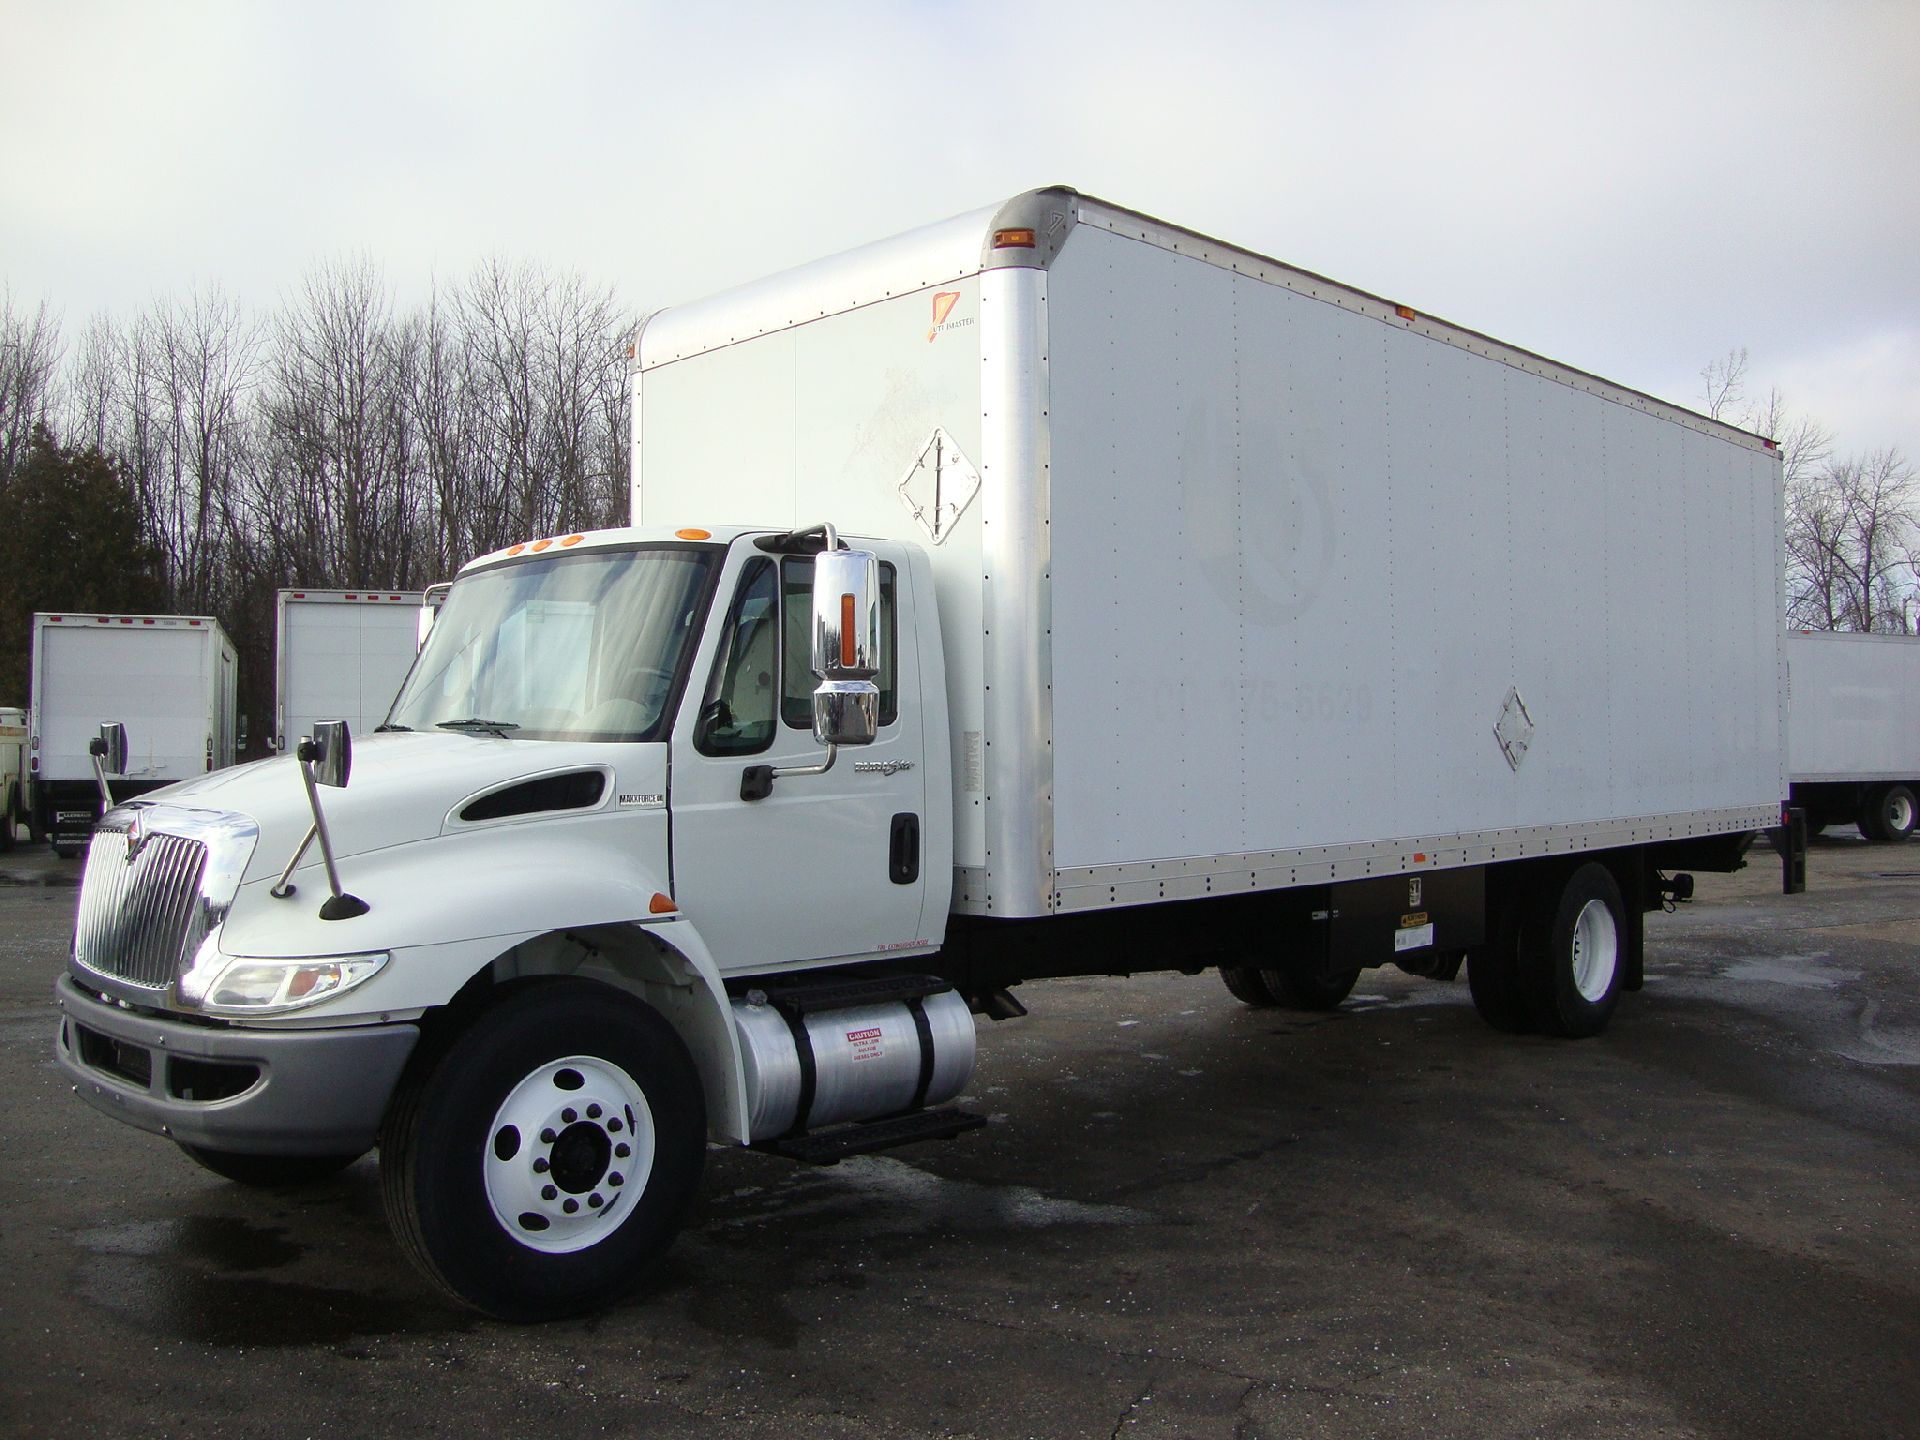 Picture of 2011 International 4300 truck for sale